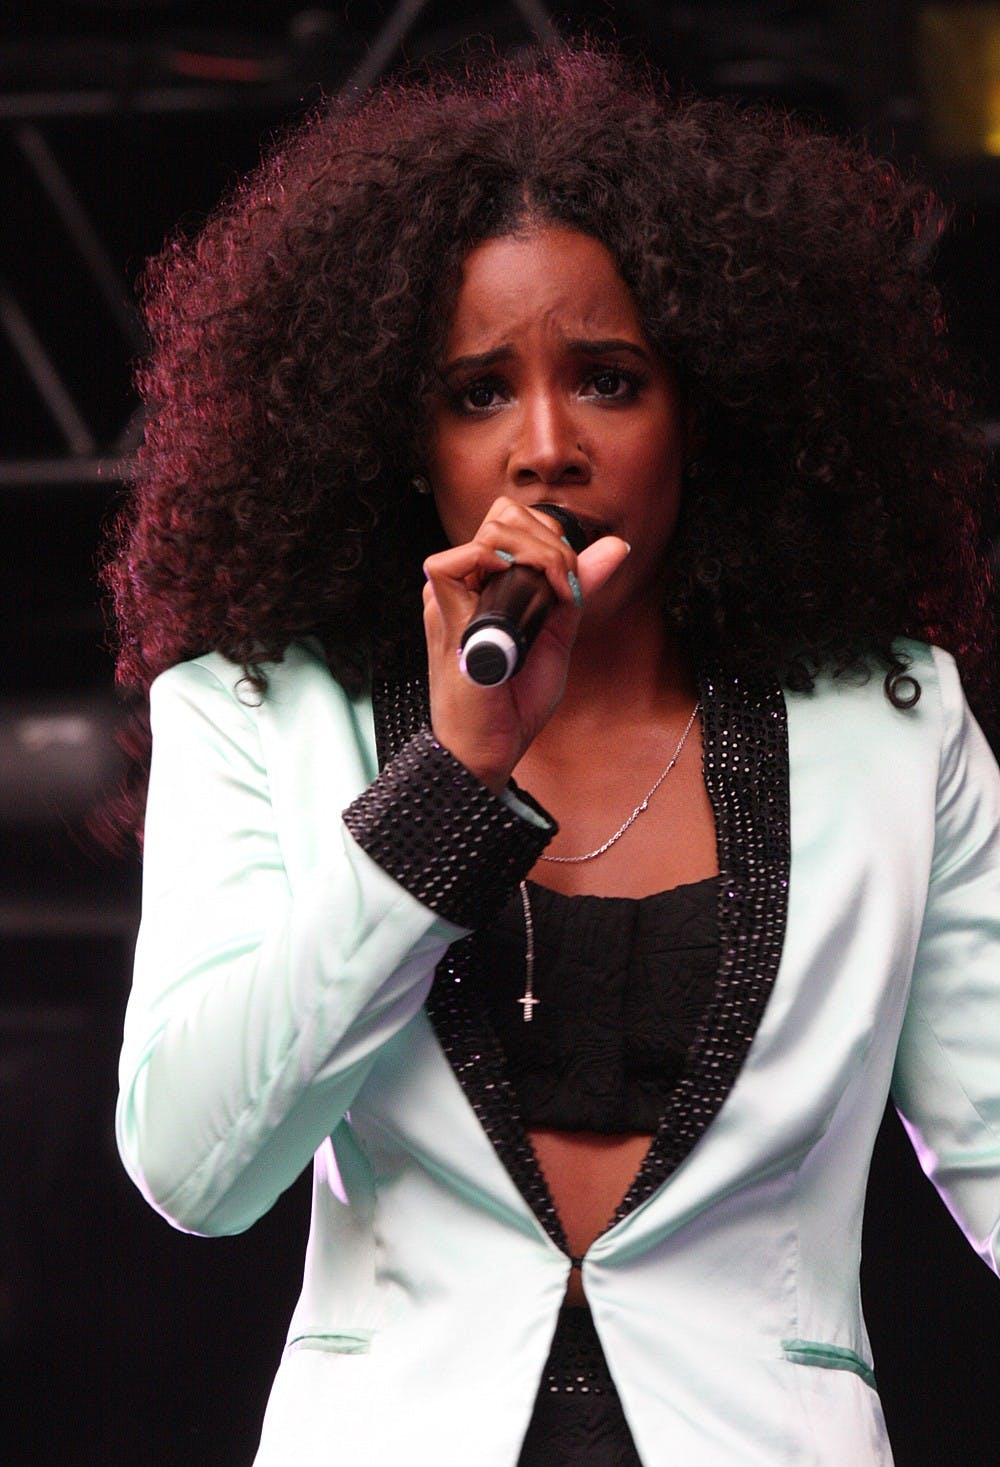 """<p>The cast of Justin Simien's """"Bad Hair"""" includes performers like Kelly Rowland, Usher and Lena Waithe.&nbsp;</p>"""